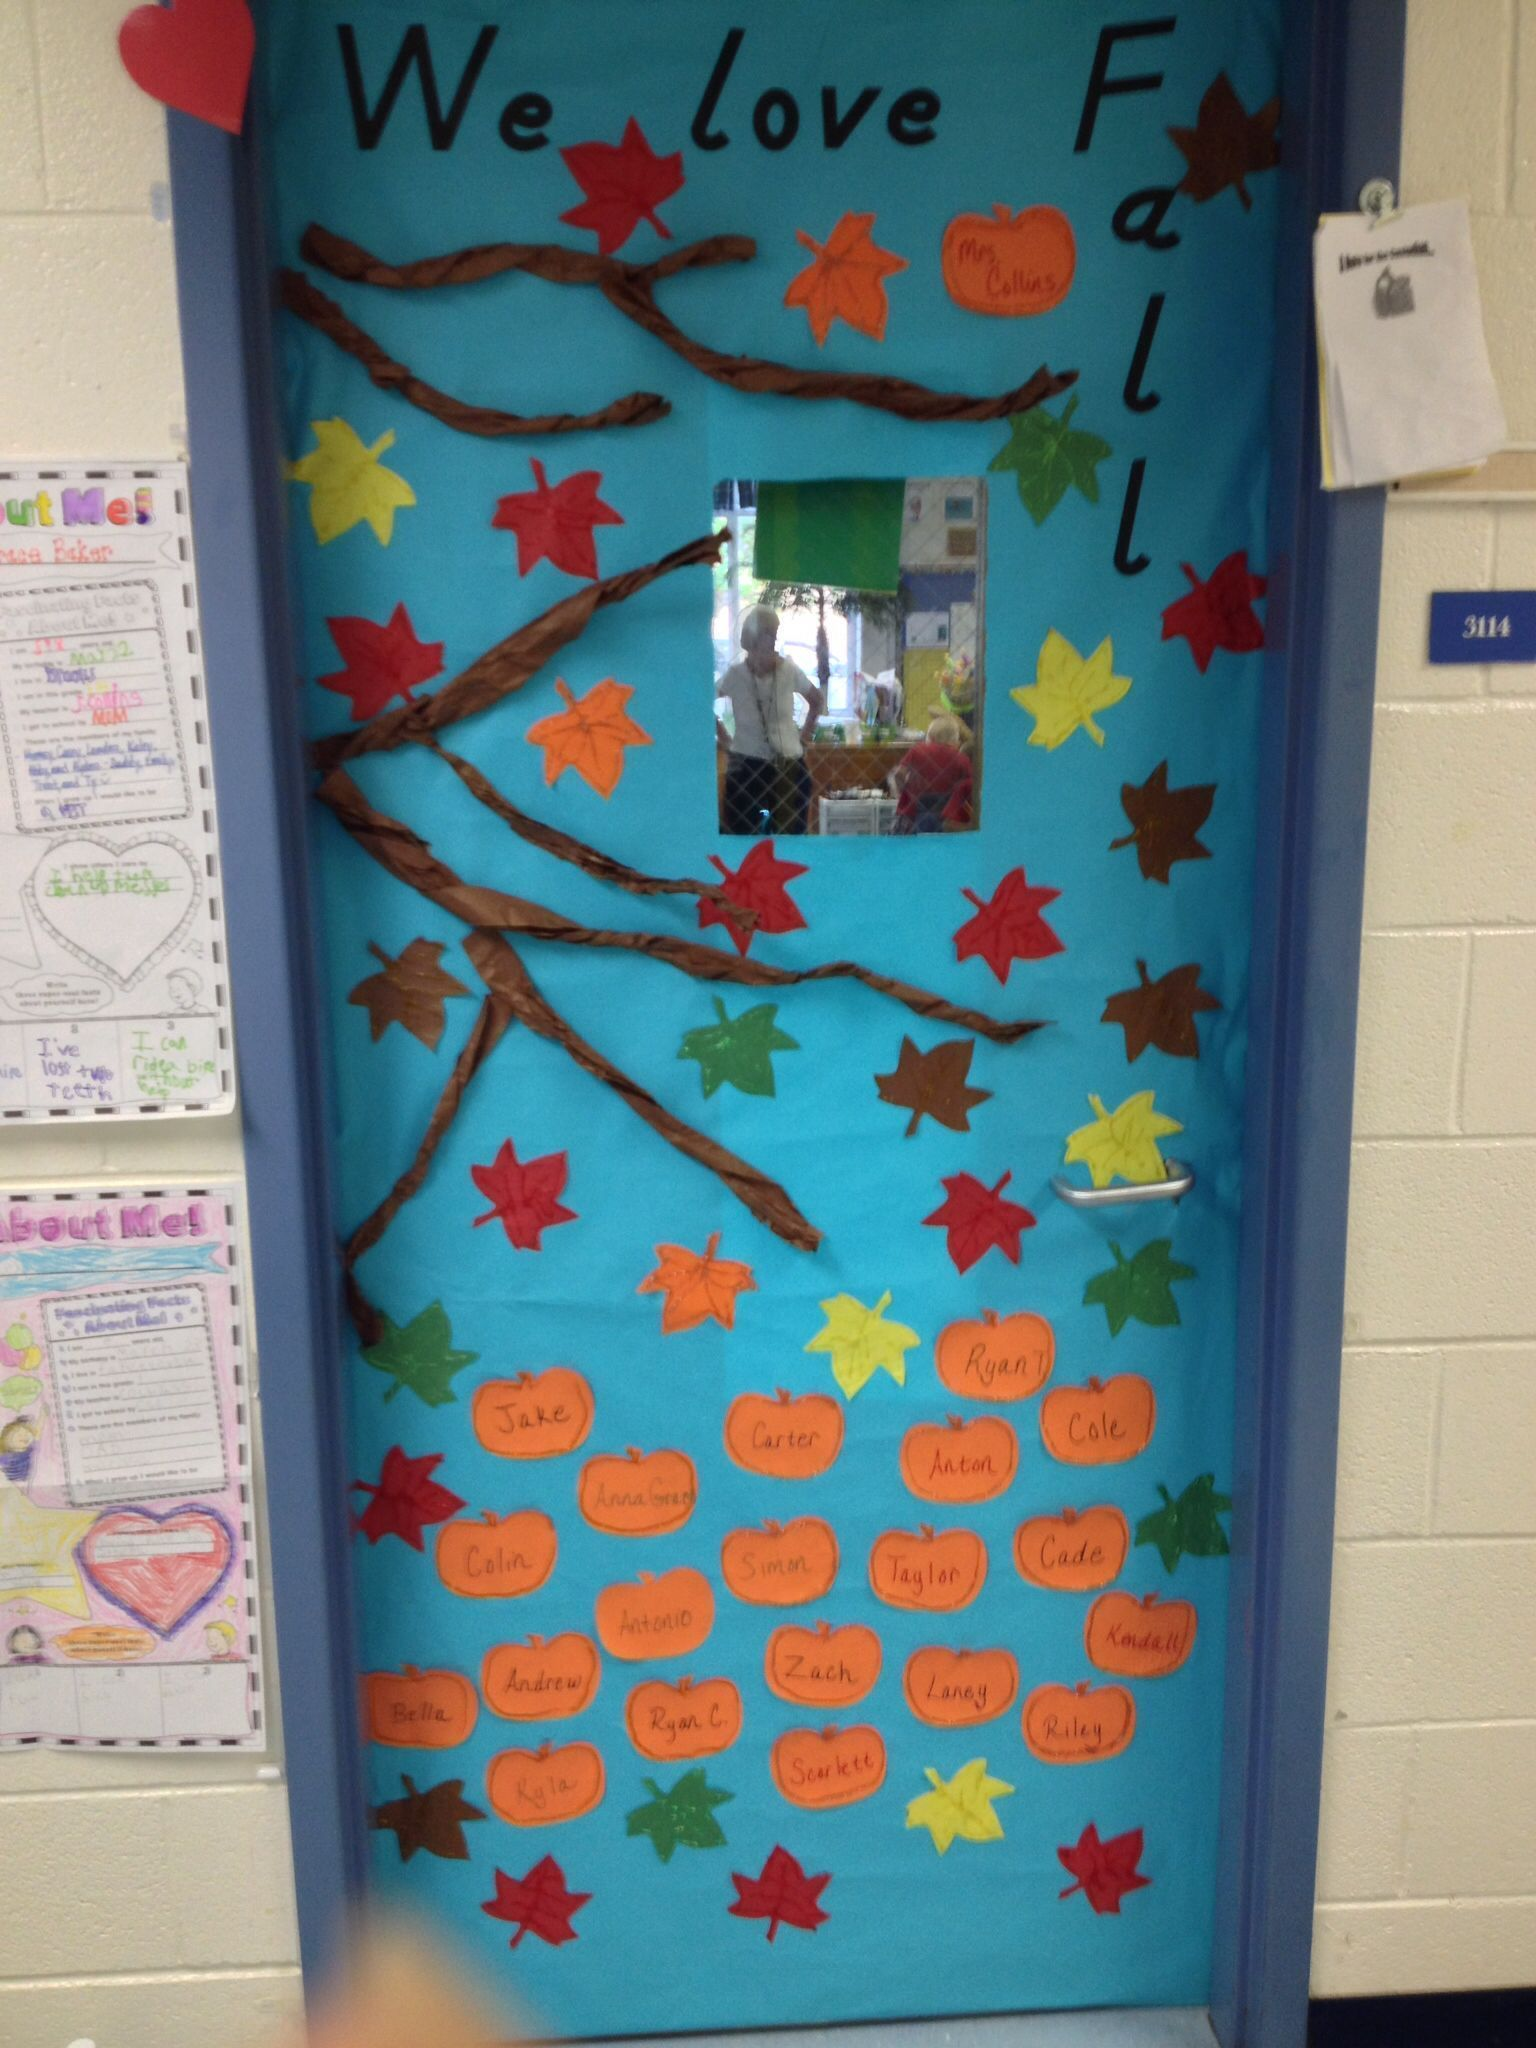 Fall classroom door decoration #falldoordecorationsclassroom Fall classroom door decoration #falldoordecorationsclassroom Fall classroom door decoration #falldoordecorationsclassroom Fall classroom door decoration #christmasdoordecorationsforschool Fall classroom door decoration #falldoordecorationsclassroom Fall classroom door decoration #falldoordecorationsclassroom Fall classroom door decoration #falldoordecorationsclassroom Fall classroom door decoration #christmasdoordecorationsforschool